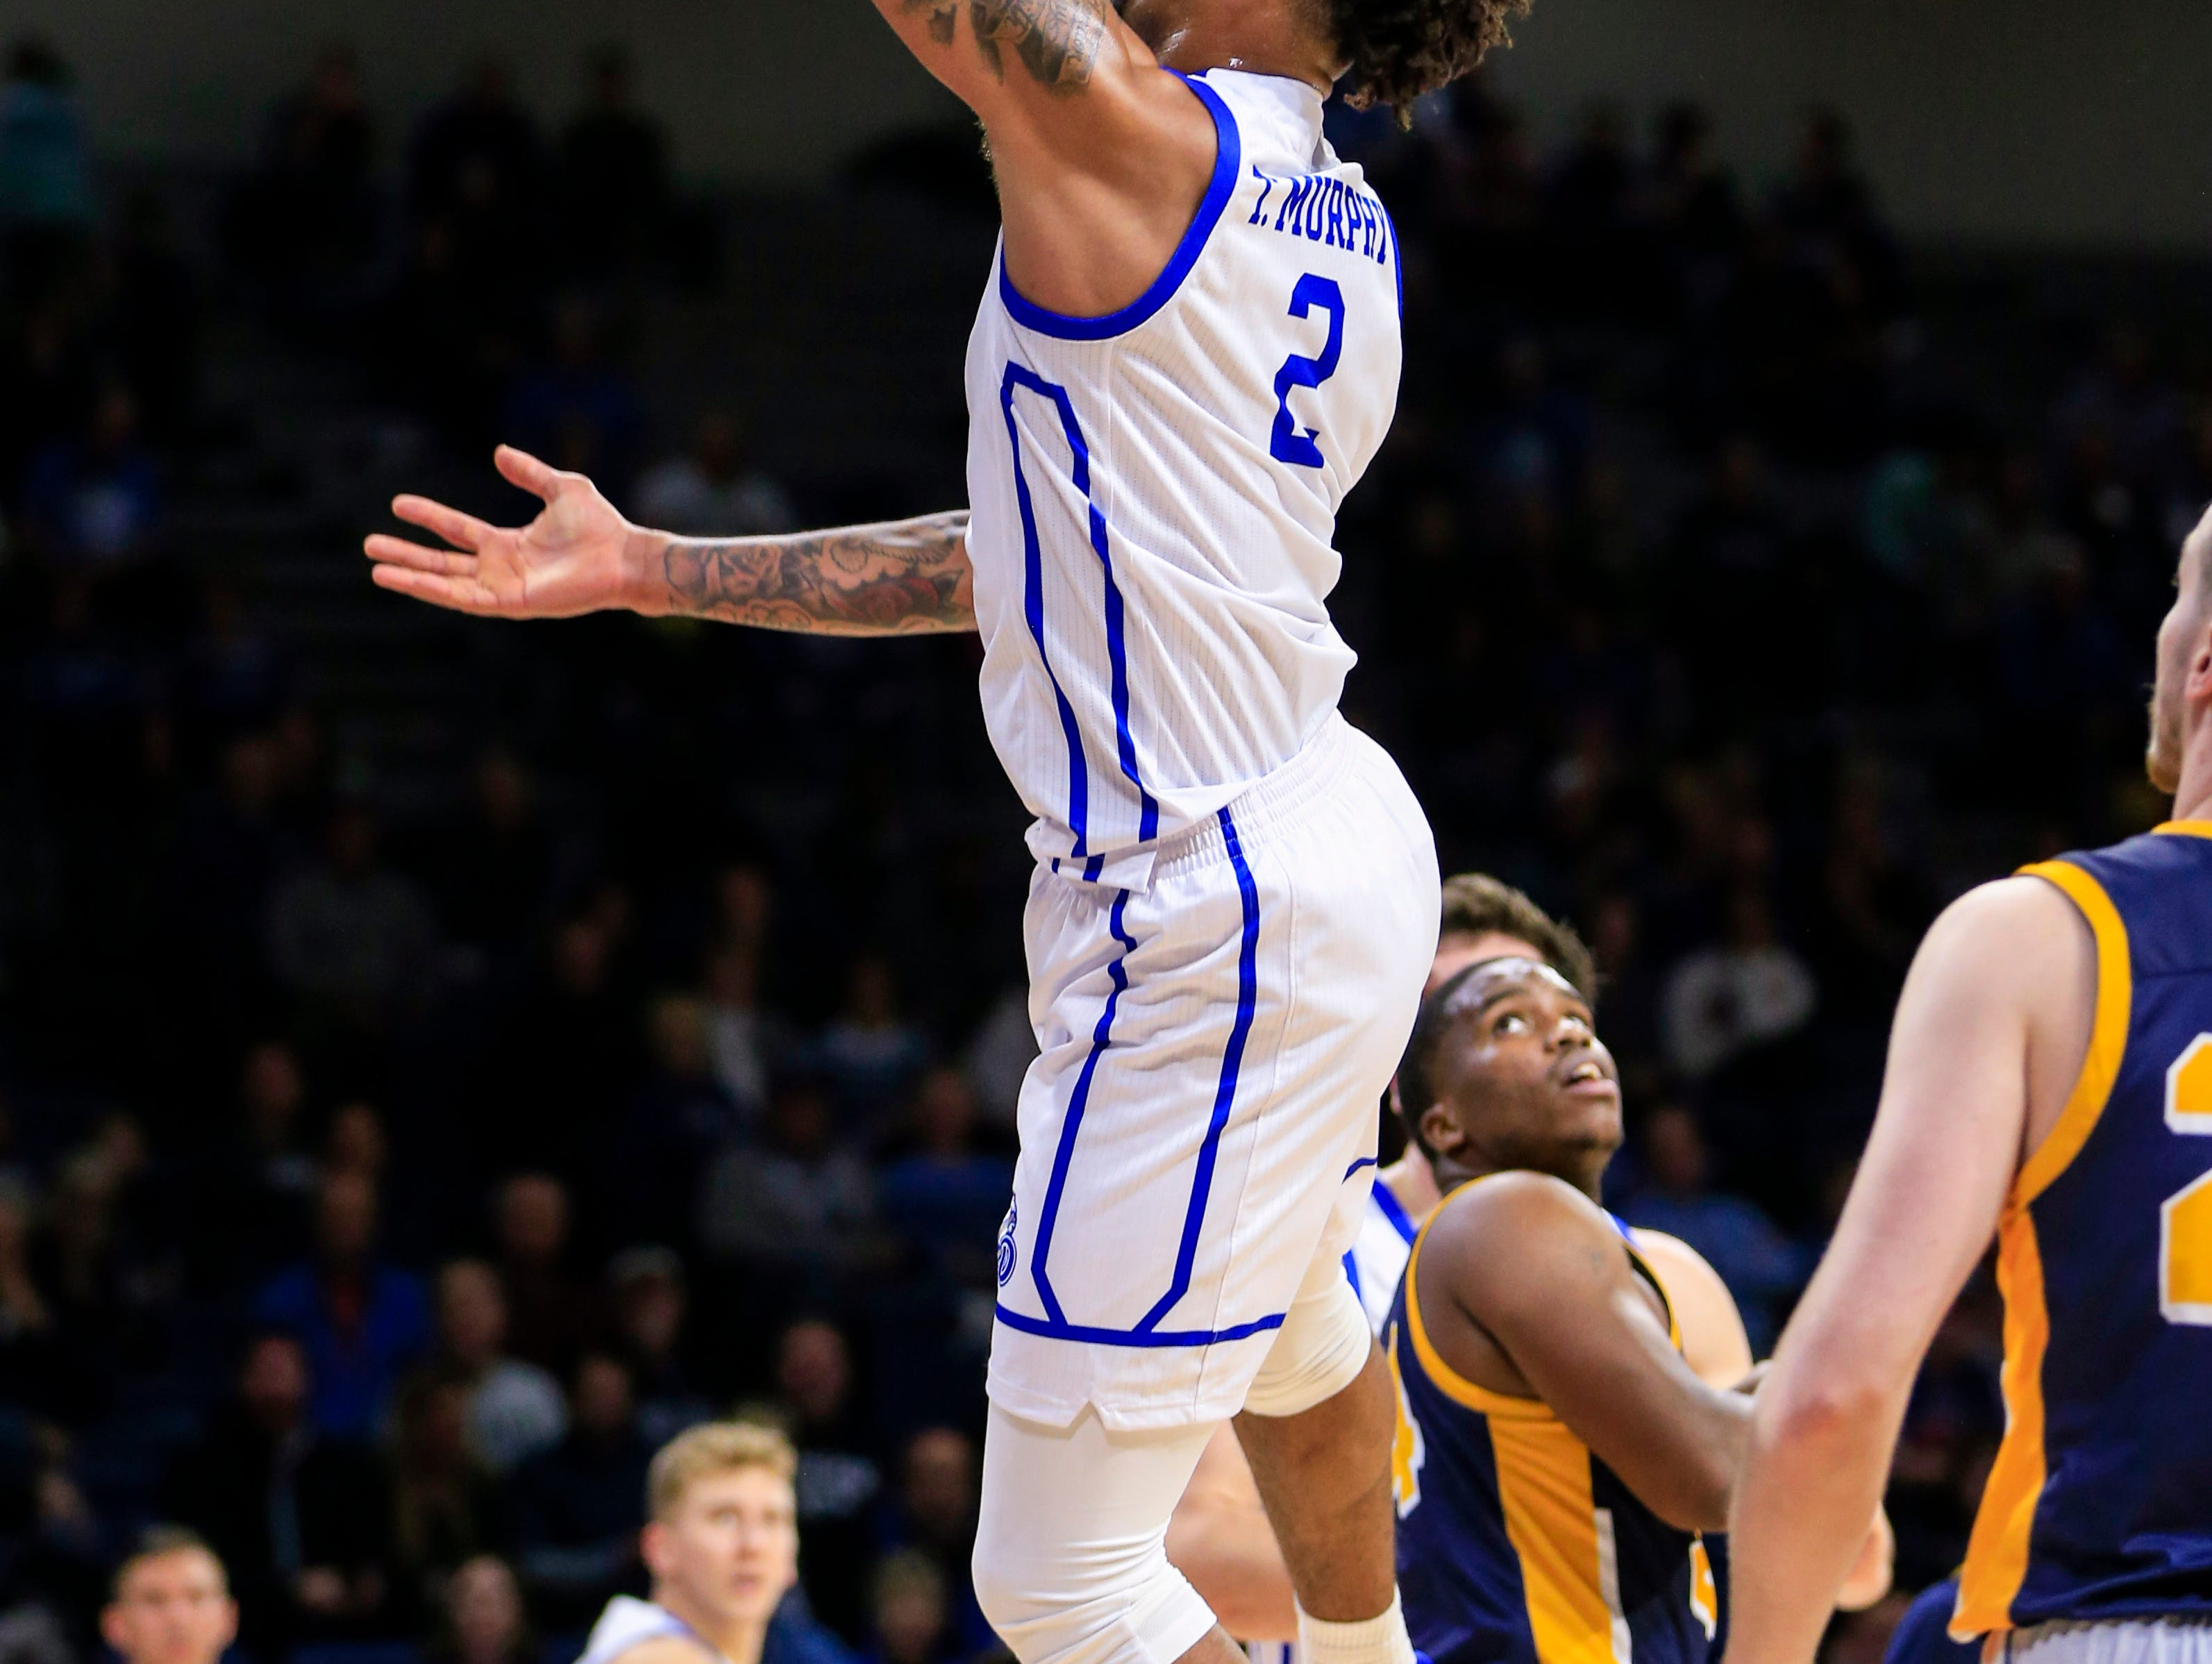 Drake's Tremell Murphy drives to the basket during a game against Buena Vista at the Knapp center Thursday, Nov. 8, 2018.